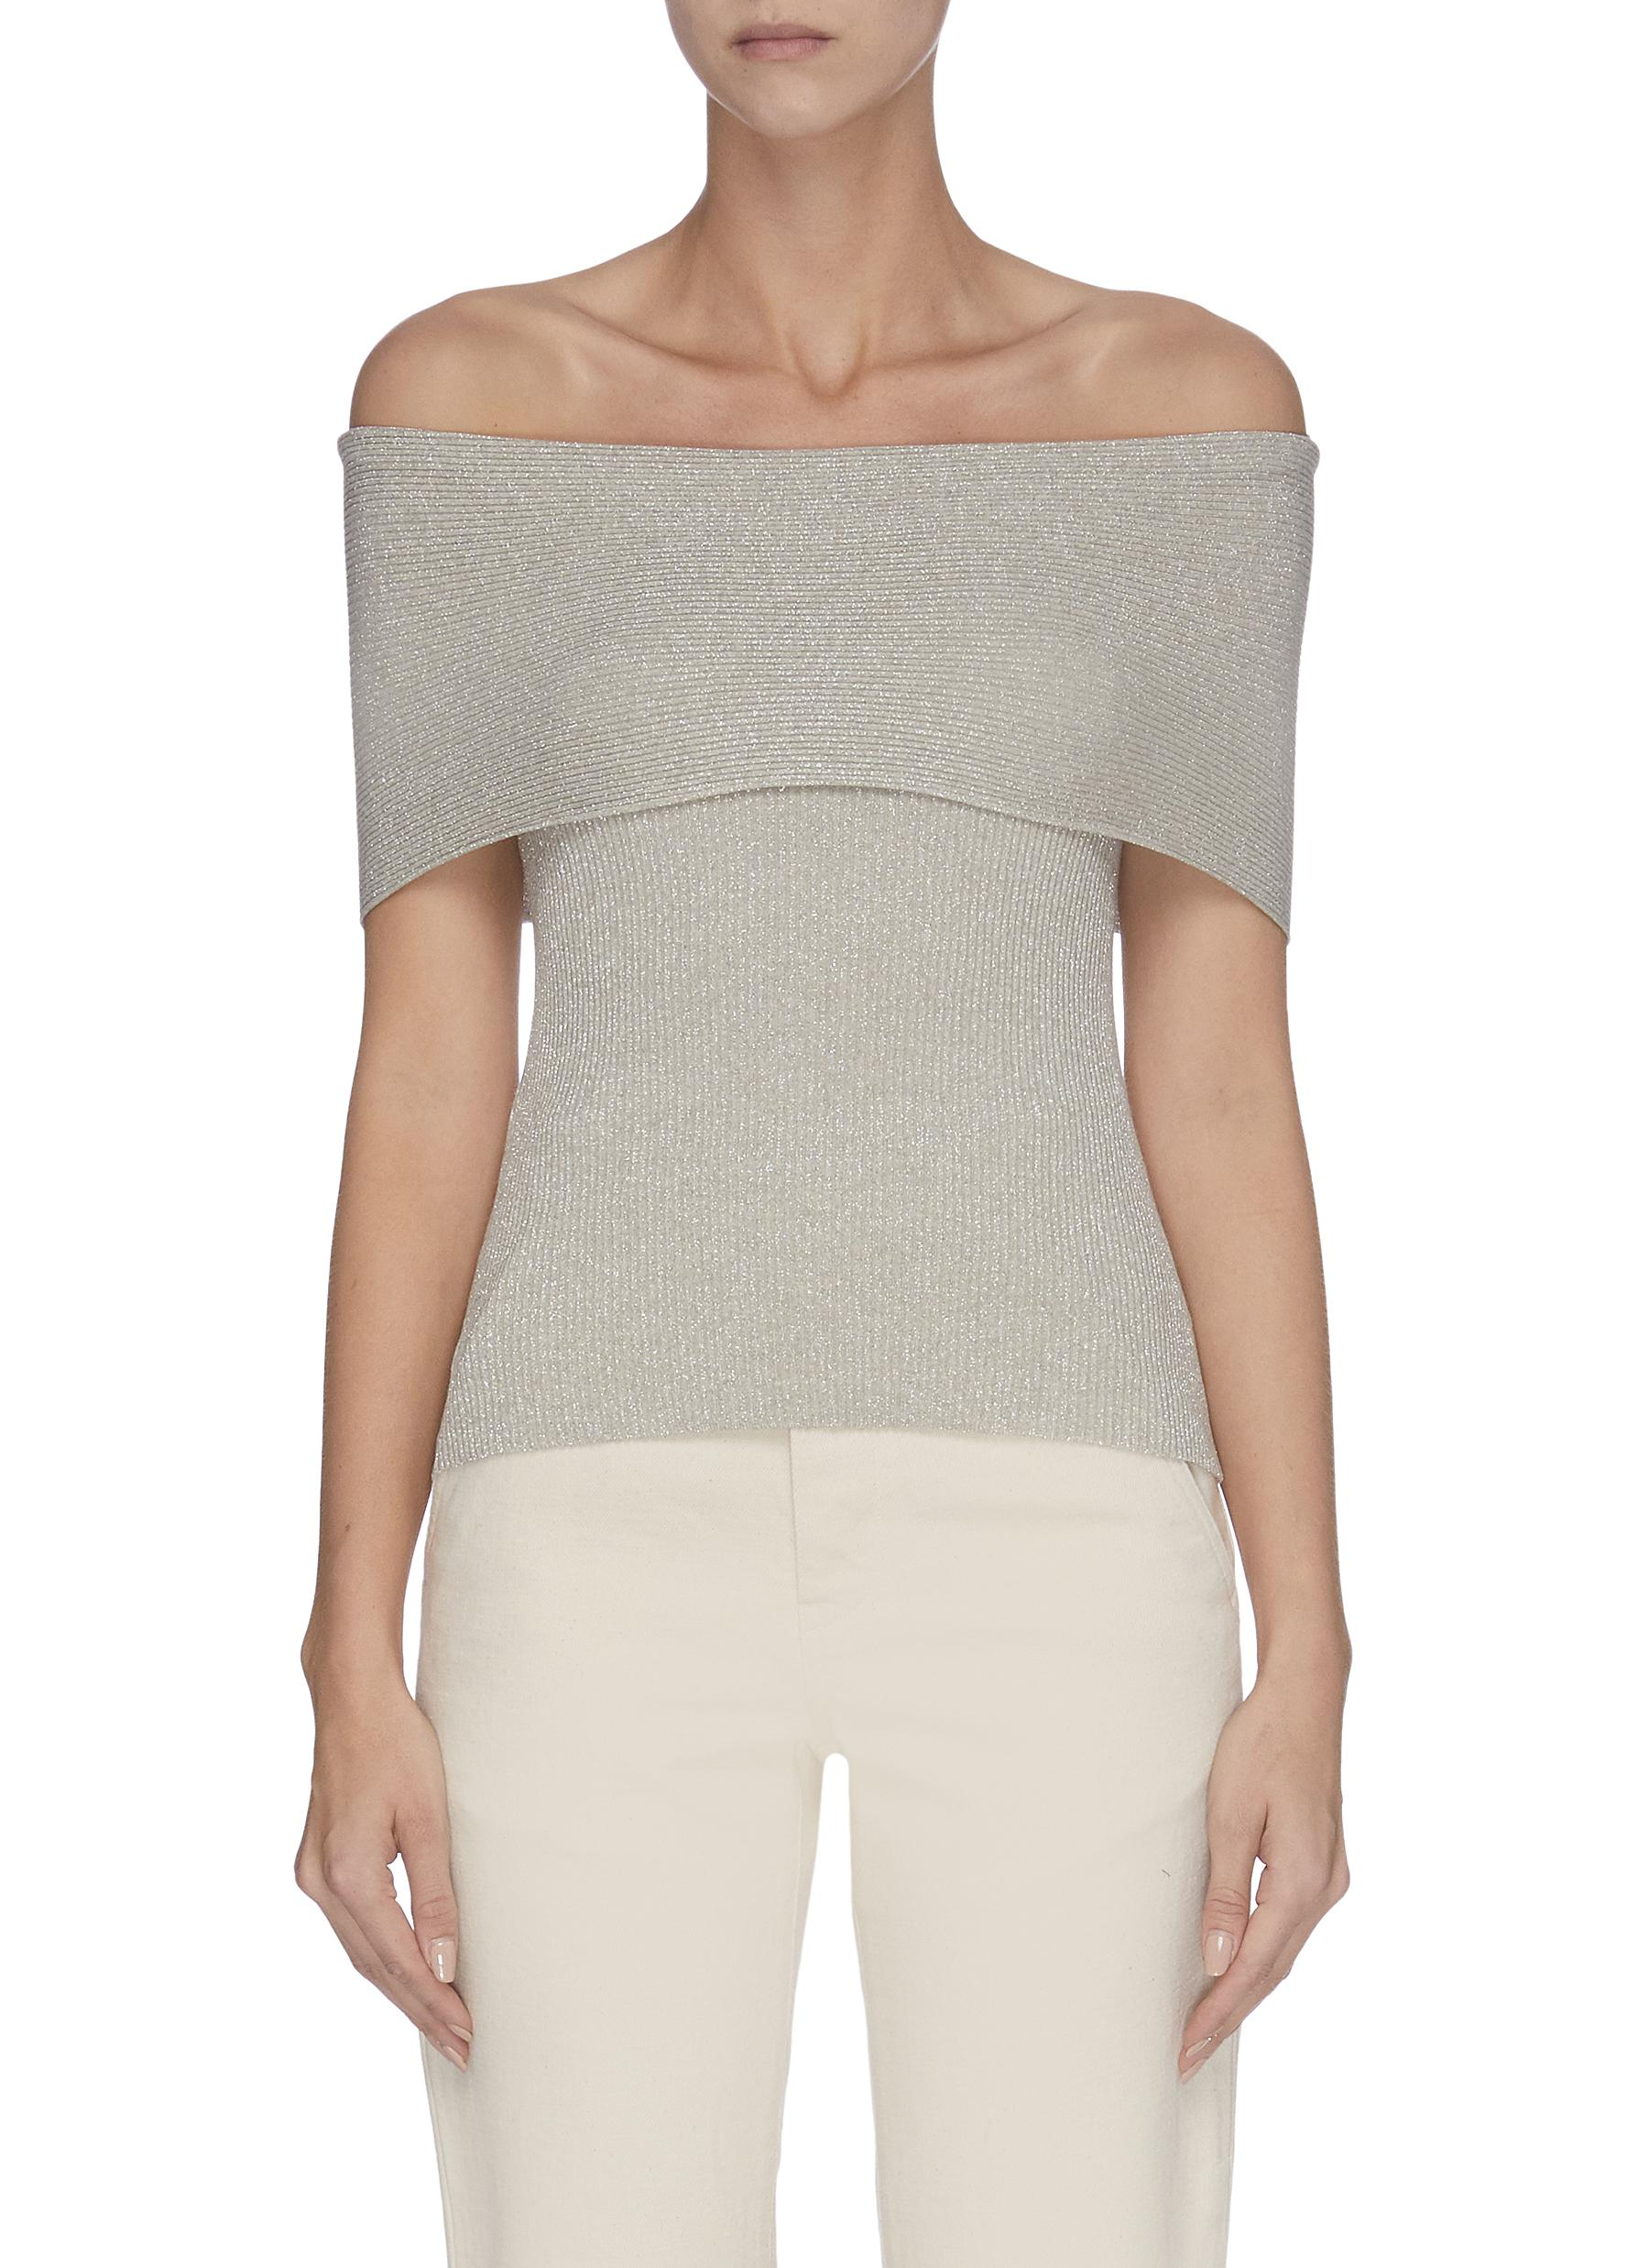 Lurex' off-shoulder sleeveless knit top - 3.1 PHILLIP LIM - Modalova